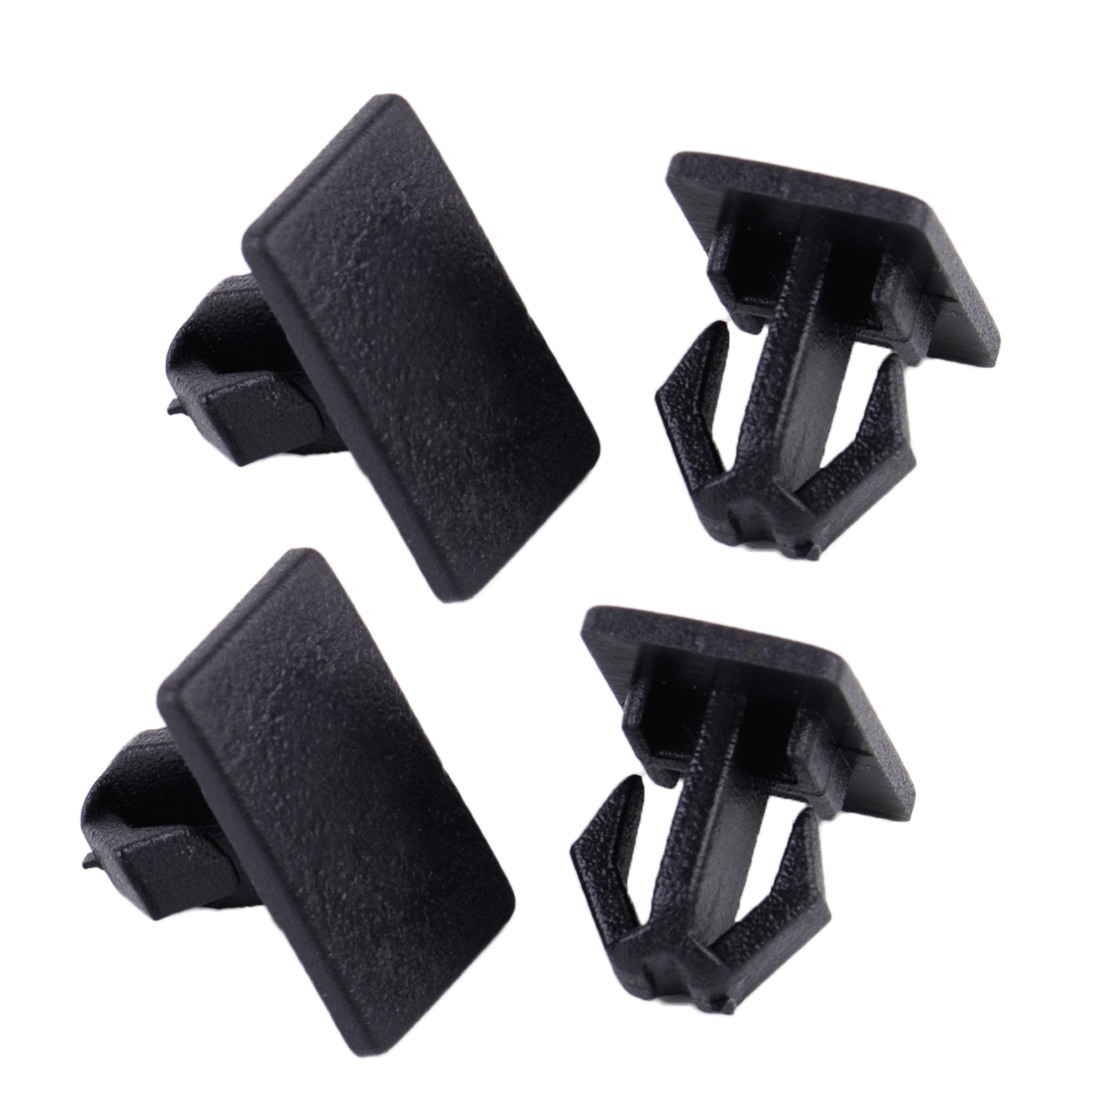 40pc Rocker Panel Molding Clips 1BA41AX1AA For Dodge Charger Magnum Chrysler 300